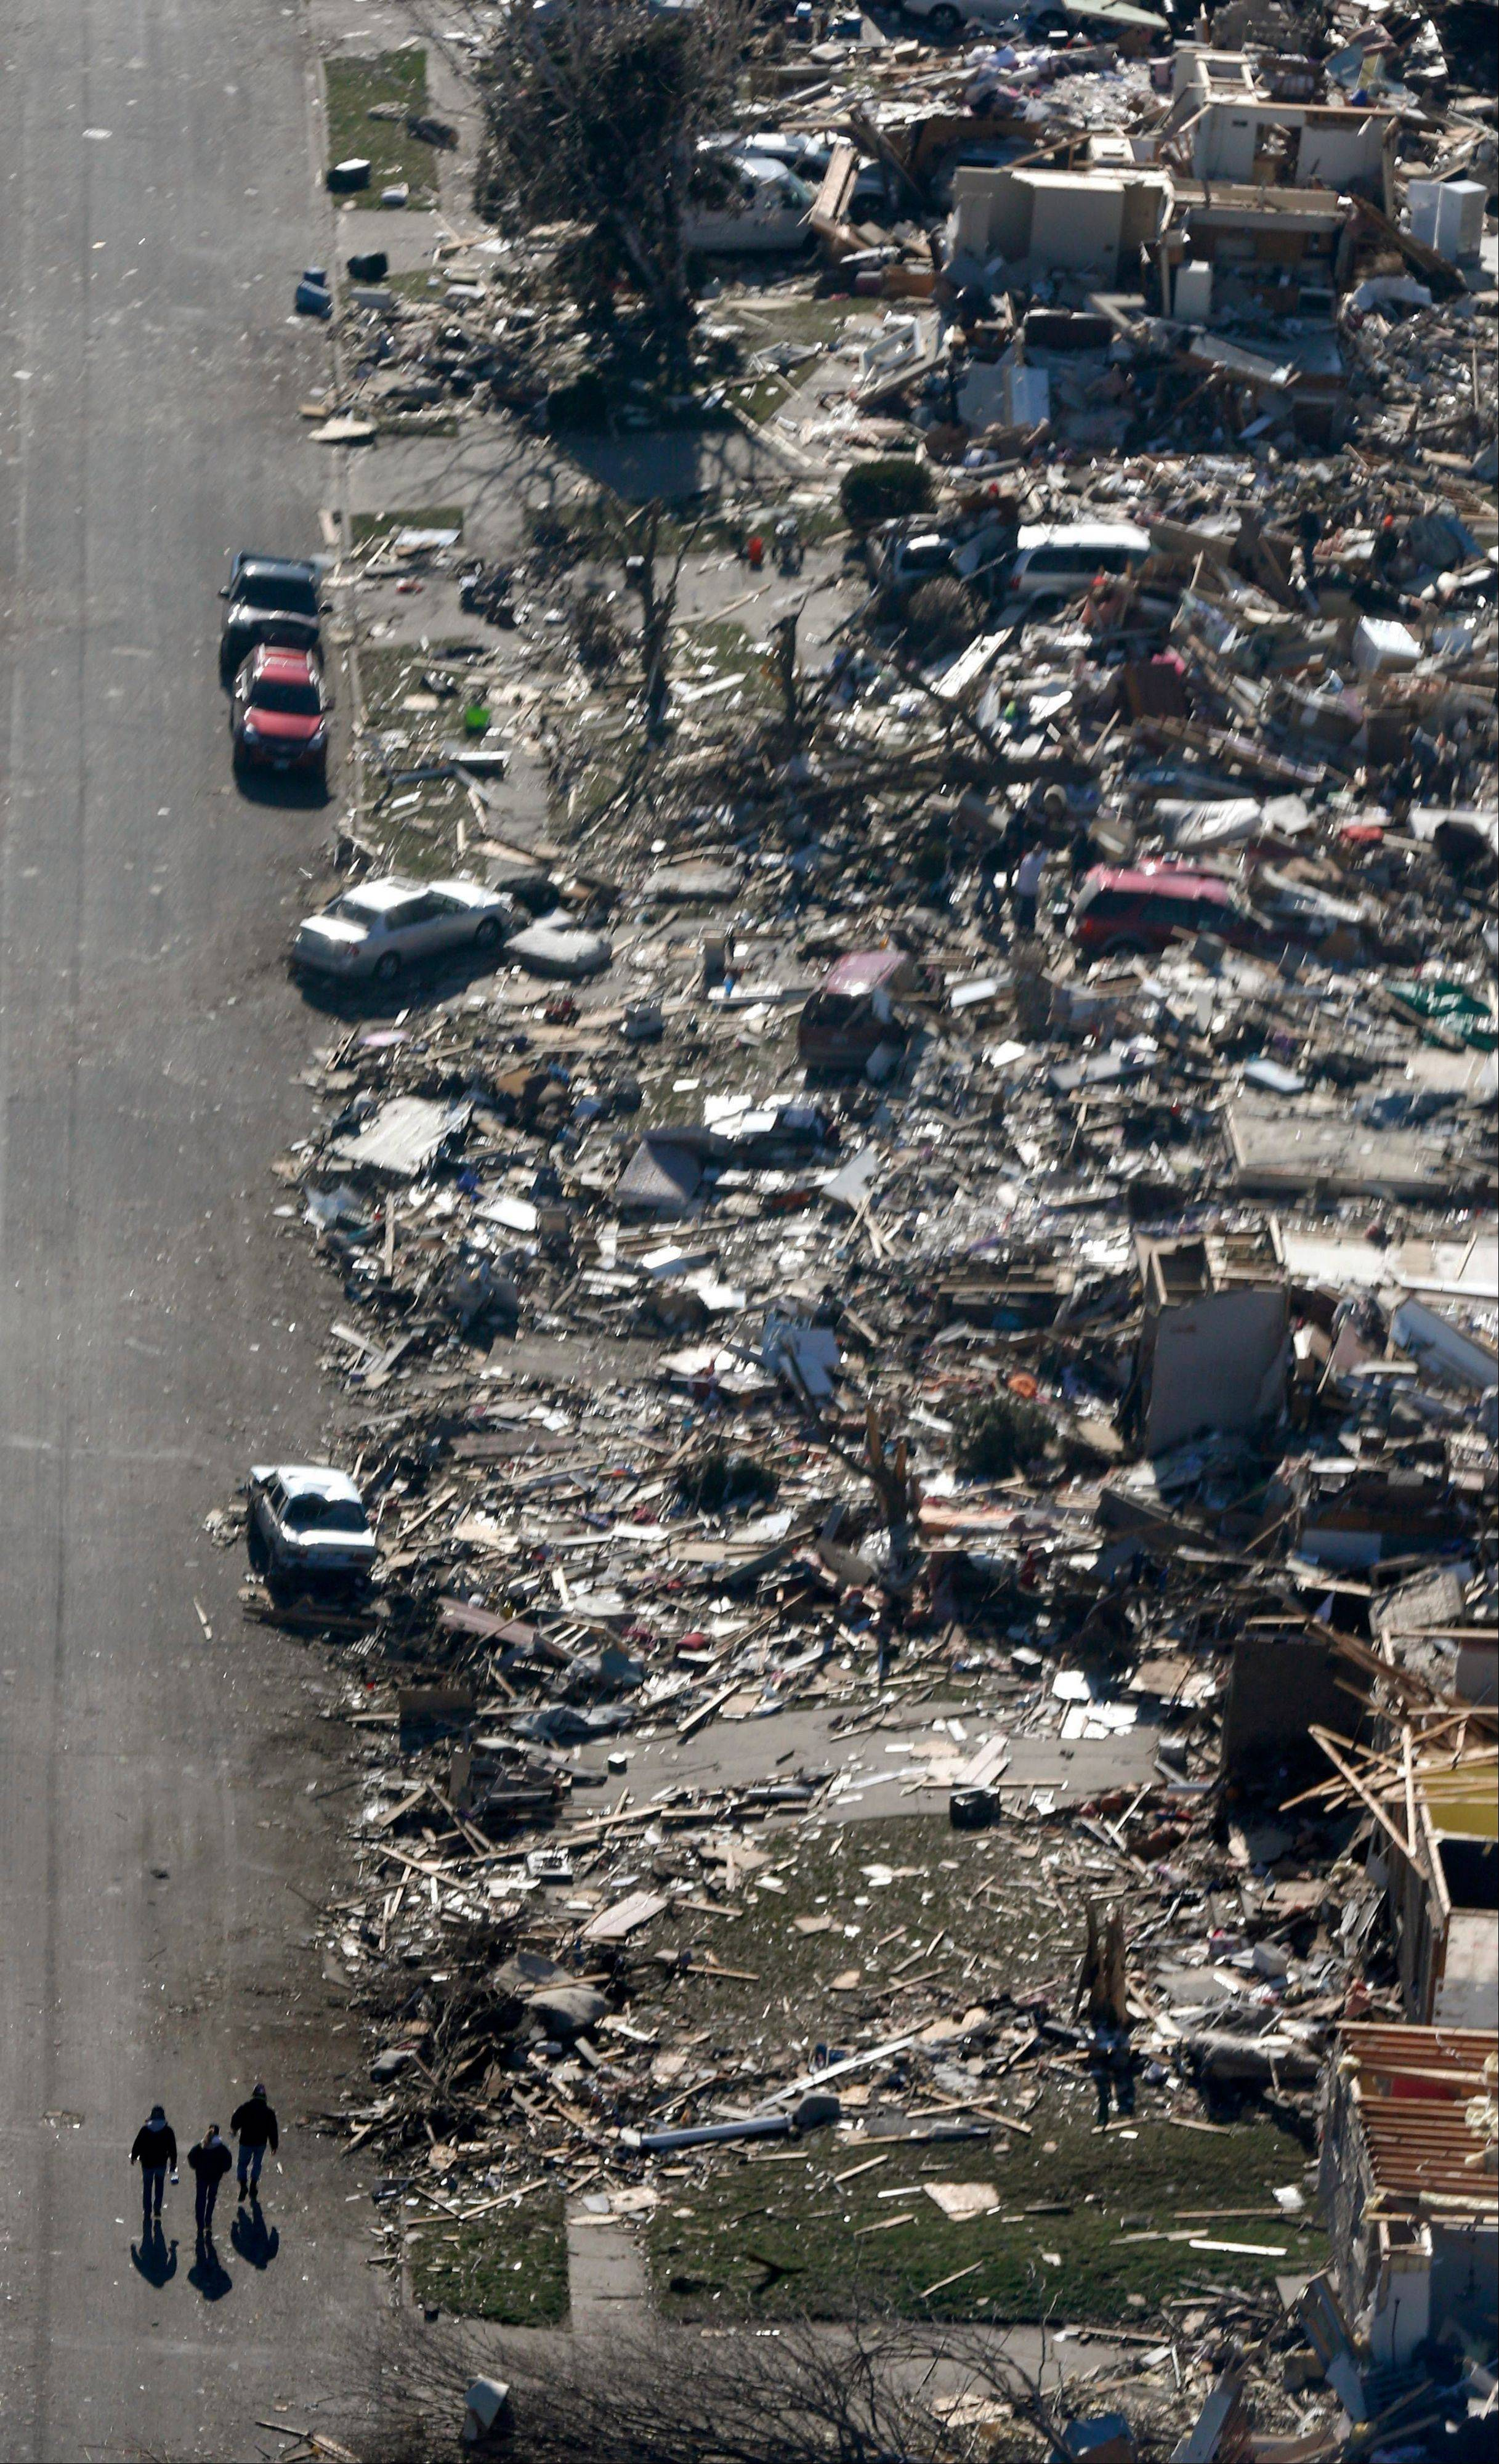 This aerial view on Monday, Nov. 18, 2013, shows three people walking down a street where homes were destroyed by a tornado that hit the western Illinois town of Washington on Sunday. It was one of the worst-hit areas after intense storms and tornadoes swept through Illinois. The National Weather Service says the tornado that hit Washington had a preliminary rating of EF-4, meaning wind speeds of 170 mph to 190 mph.